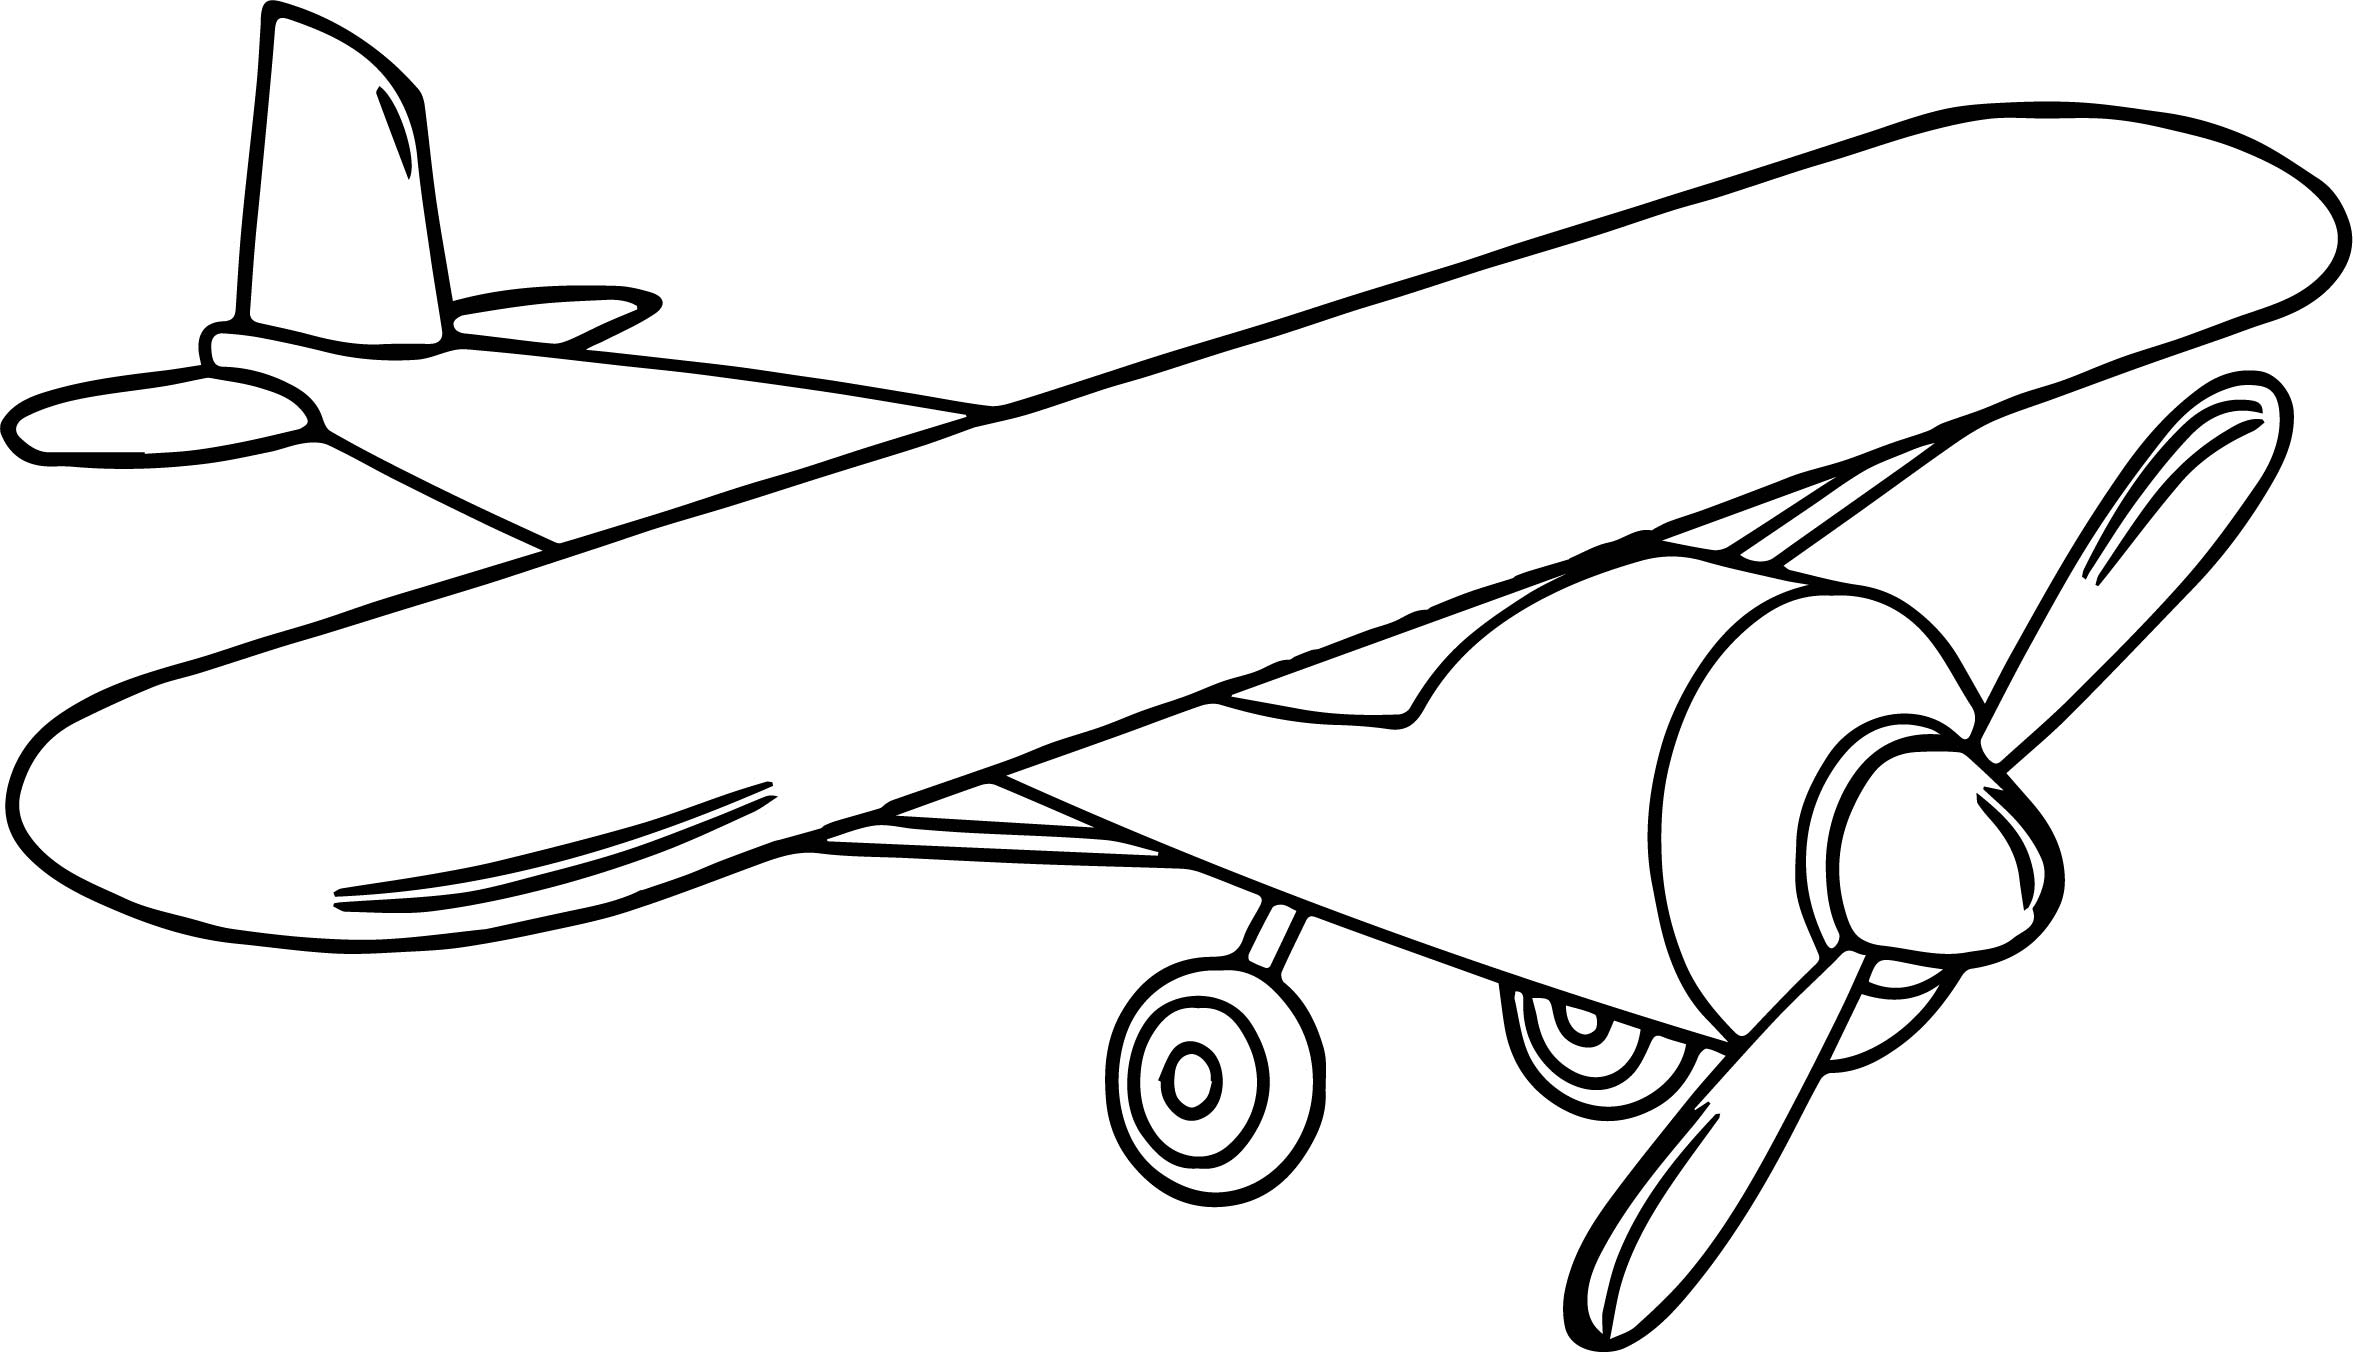 Airplane toys coloring page for Airplane coloring page printable